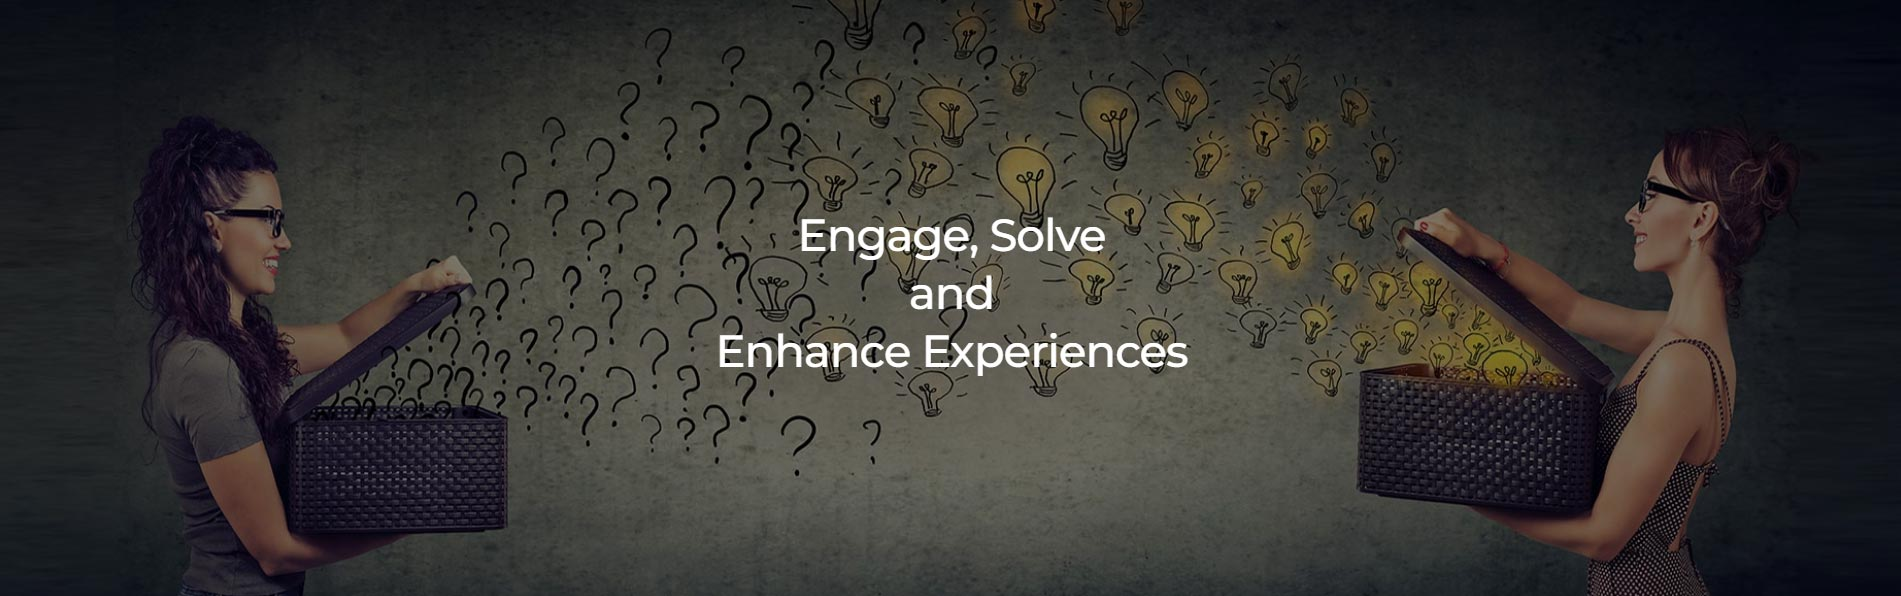 Engage Solve and Enhance Experiences